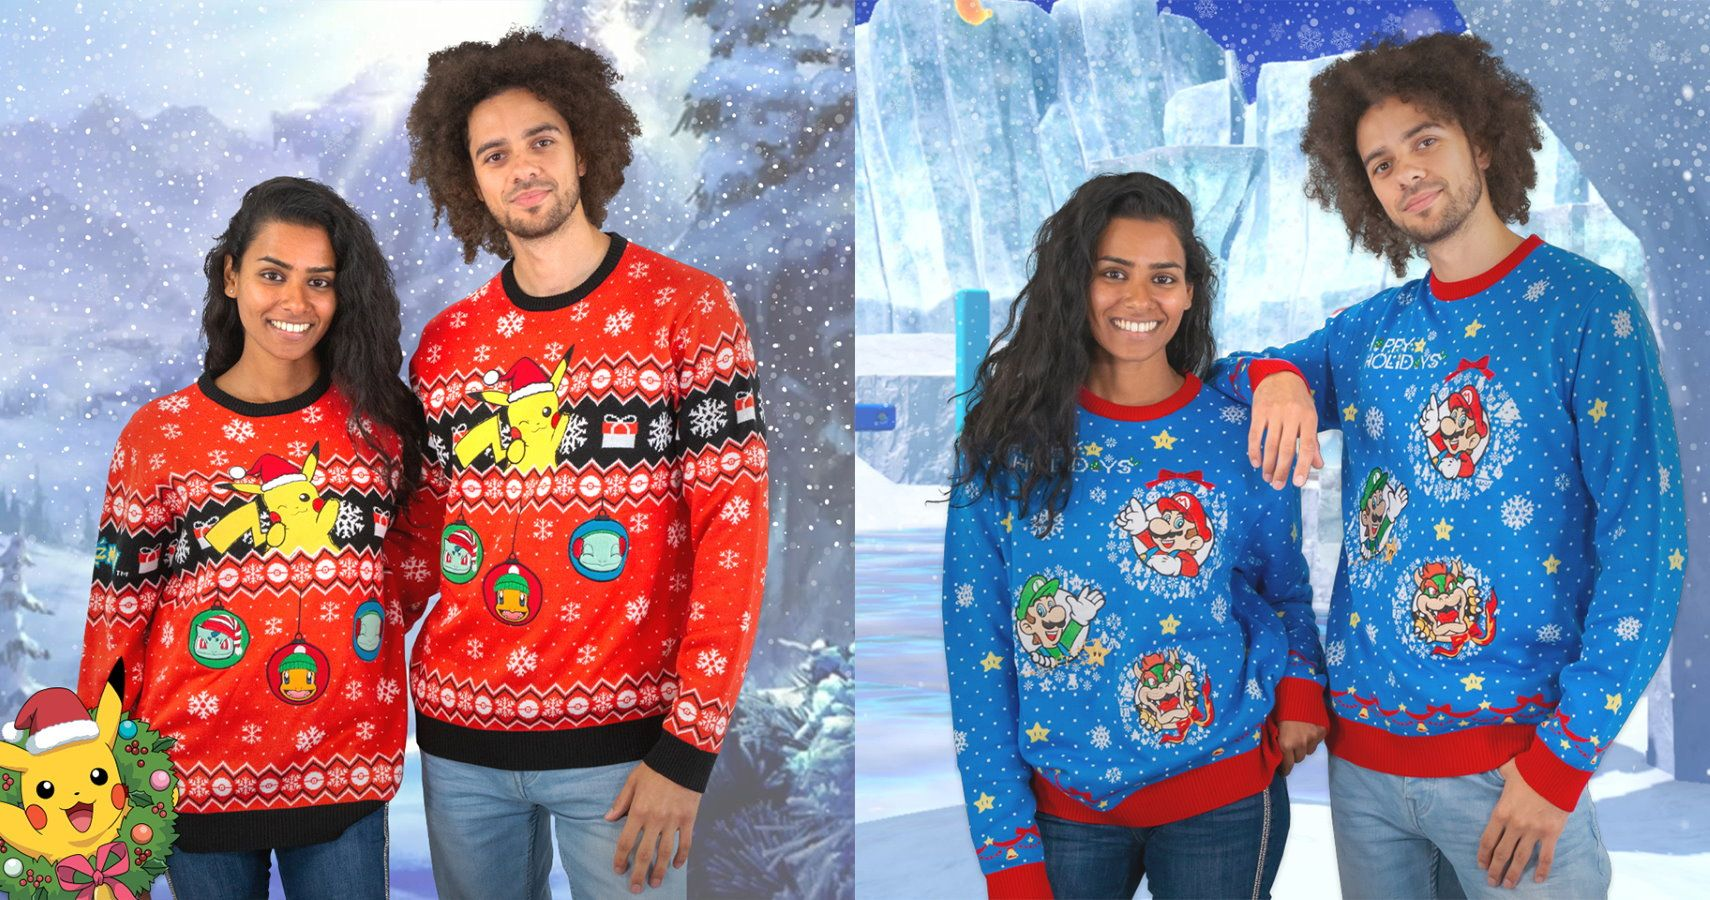 Show Your Love Of Christmas And Consumerism With These